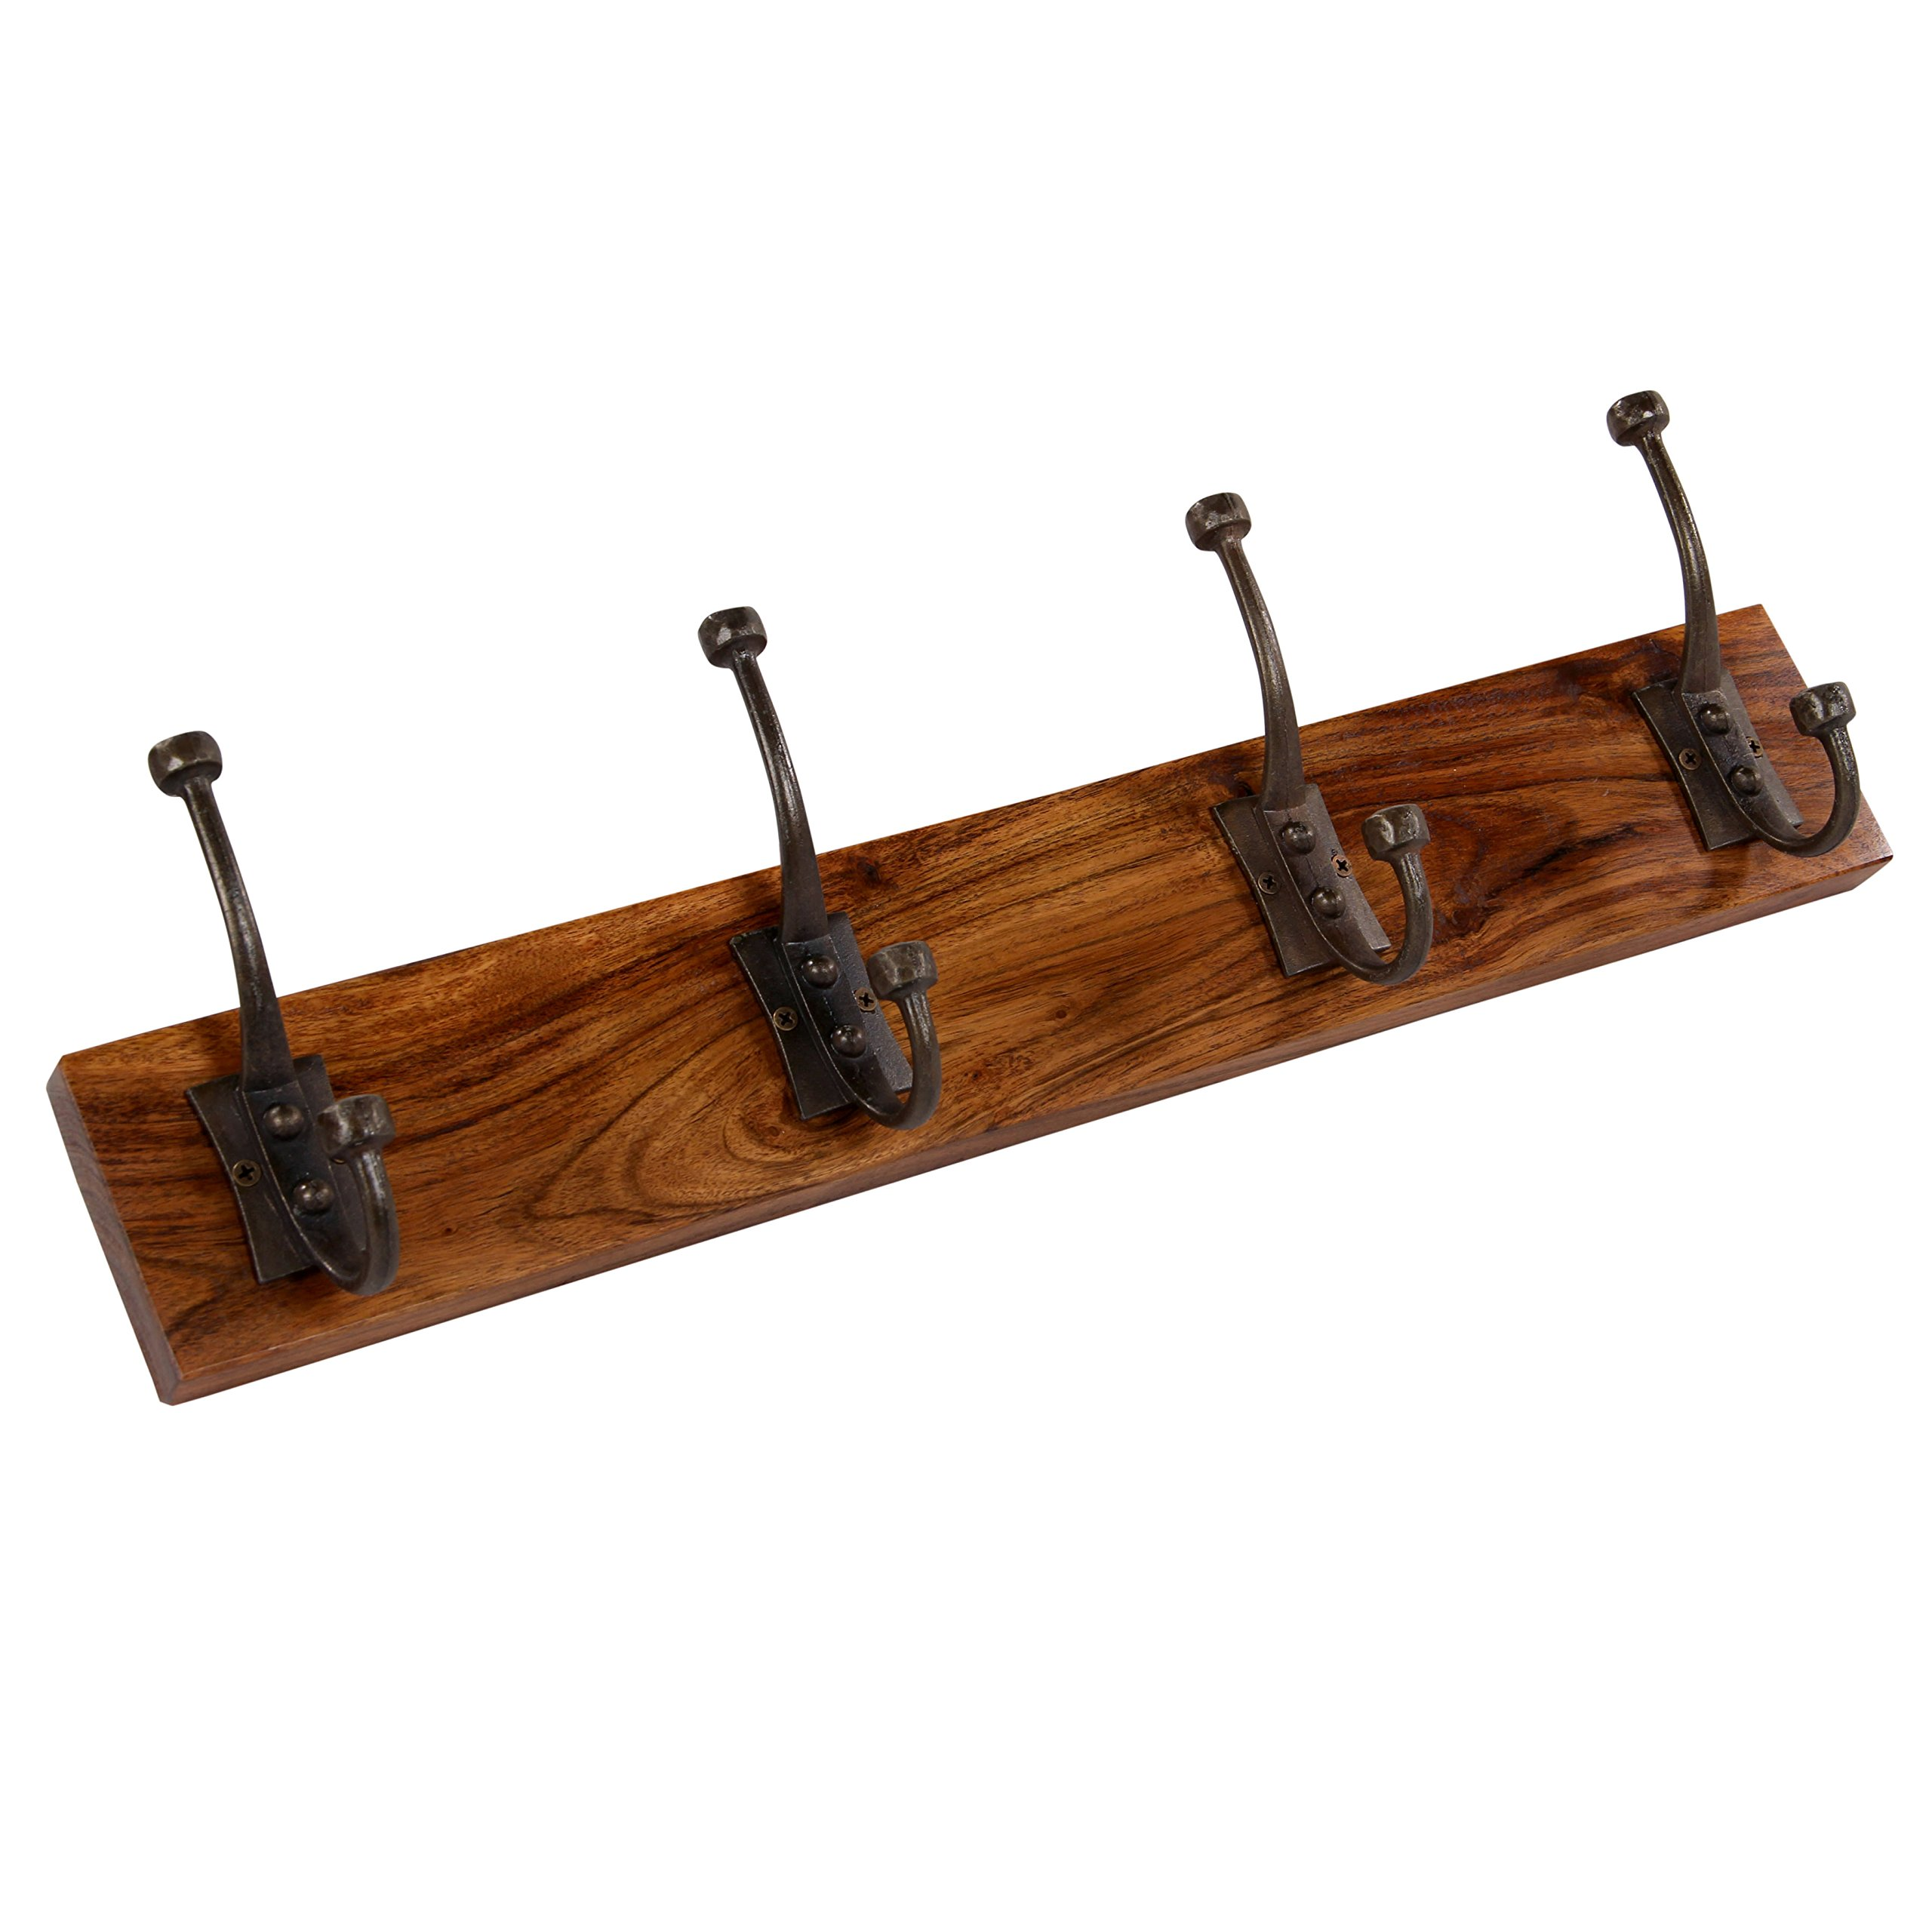 Luxe Collection 689354146468 Acacia Wood Utility Wall Mounted Hooks on Board- Antique-4 hooks by Luxe Collection (Image #1)